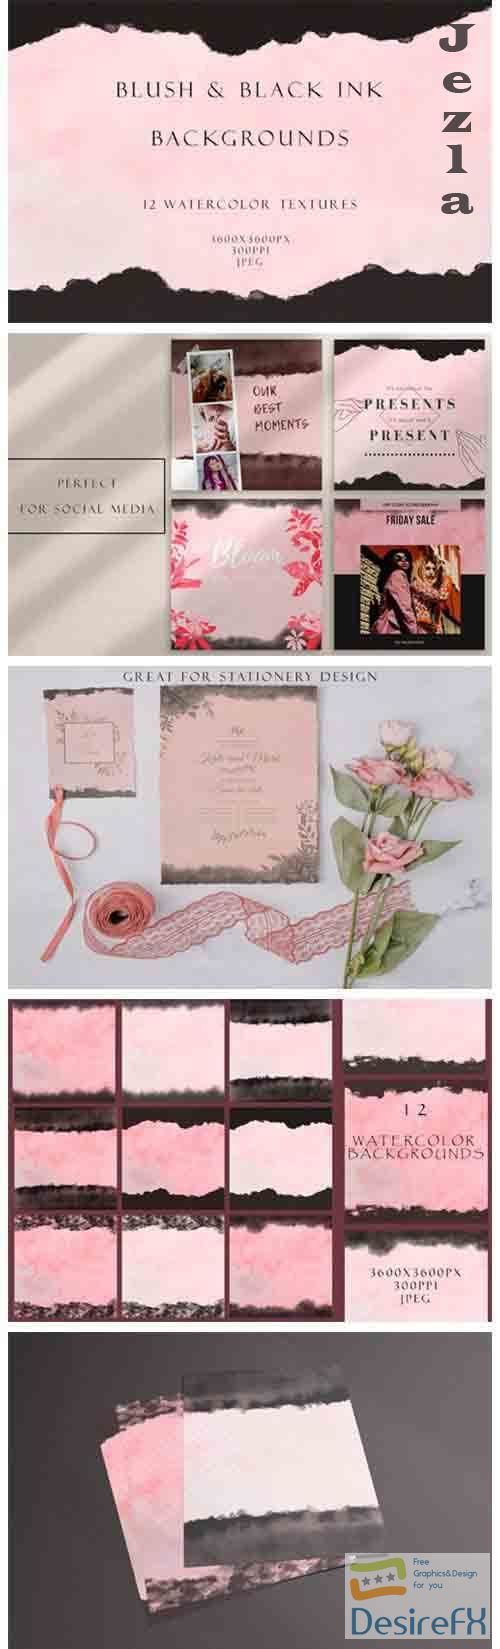 Blush and ink watercolor backgrounds - 5173026